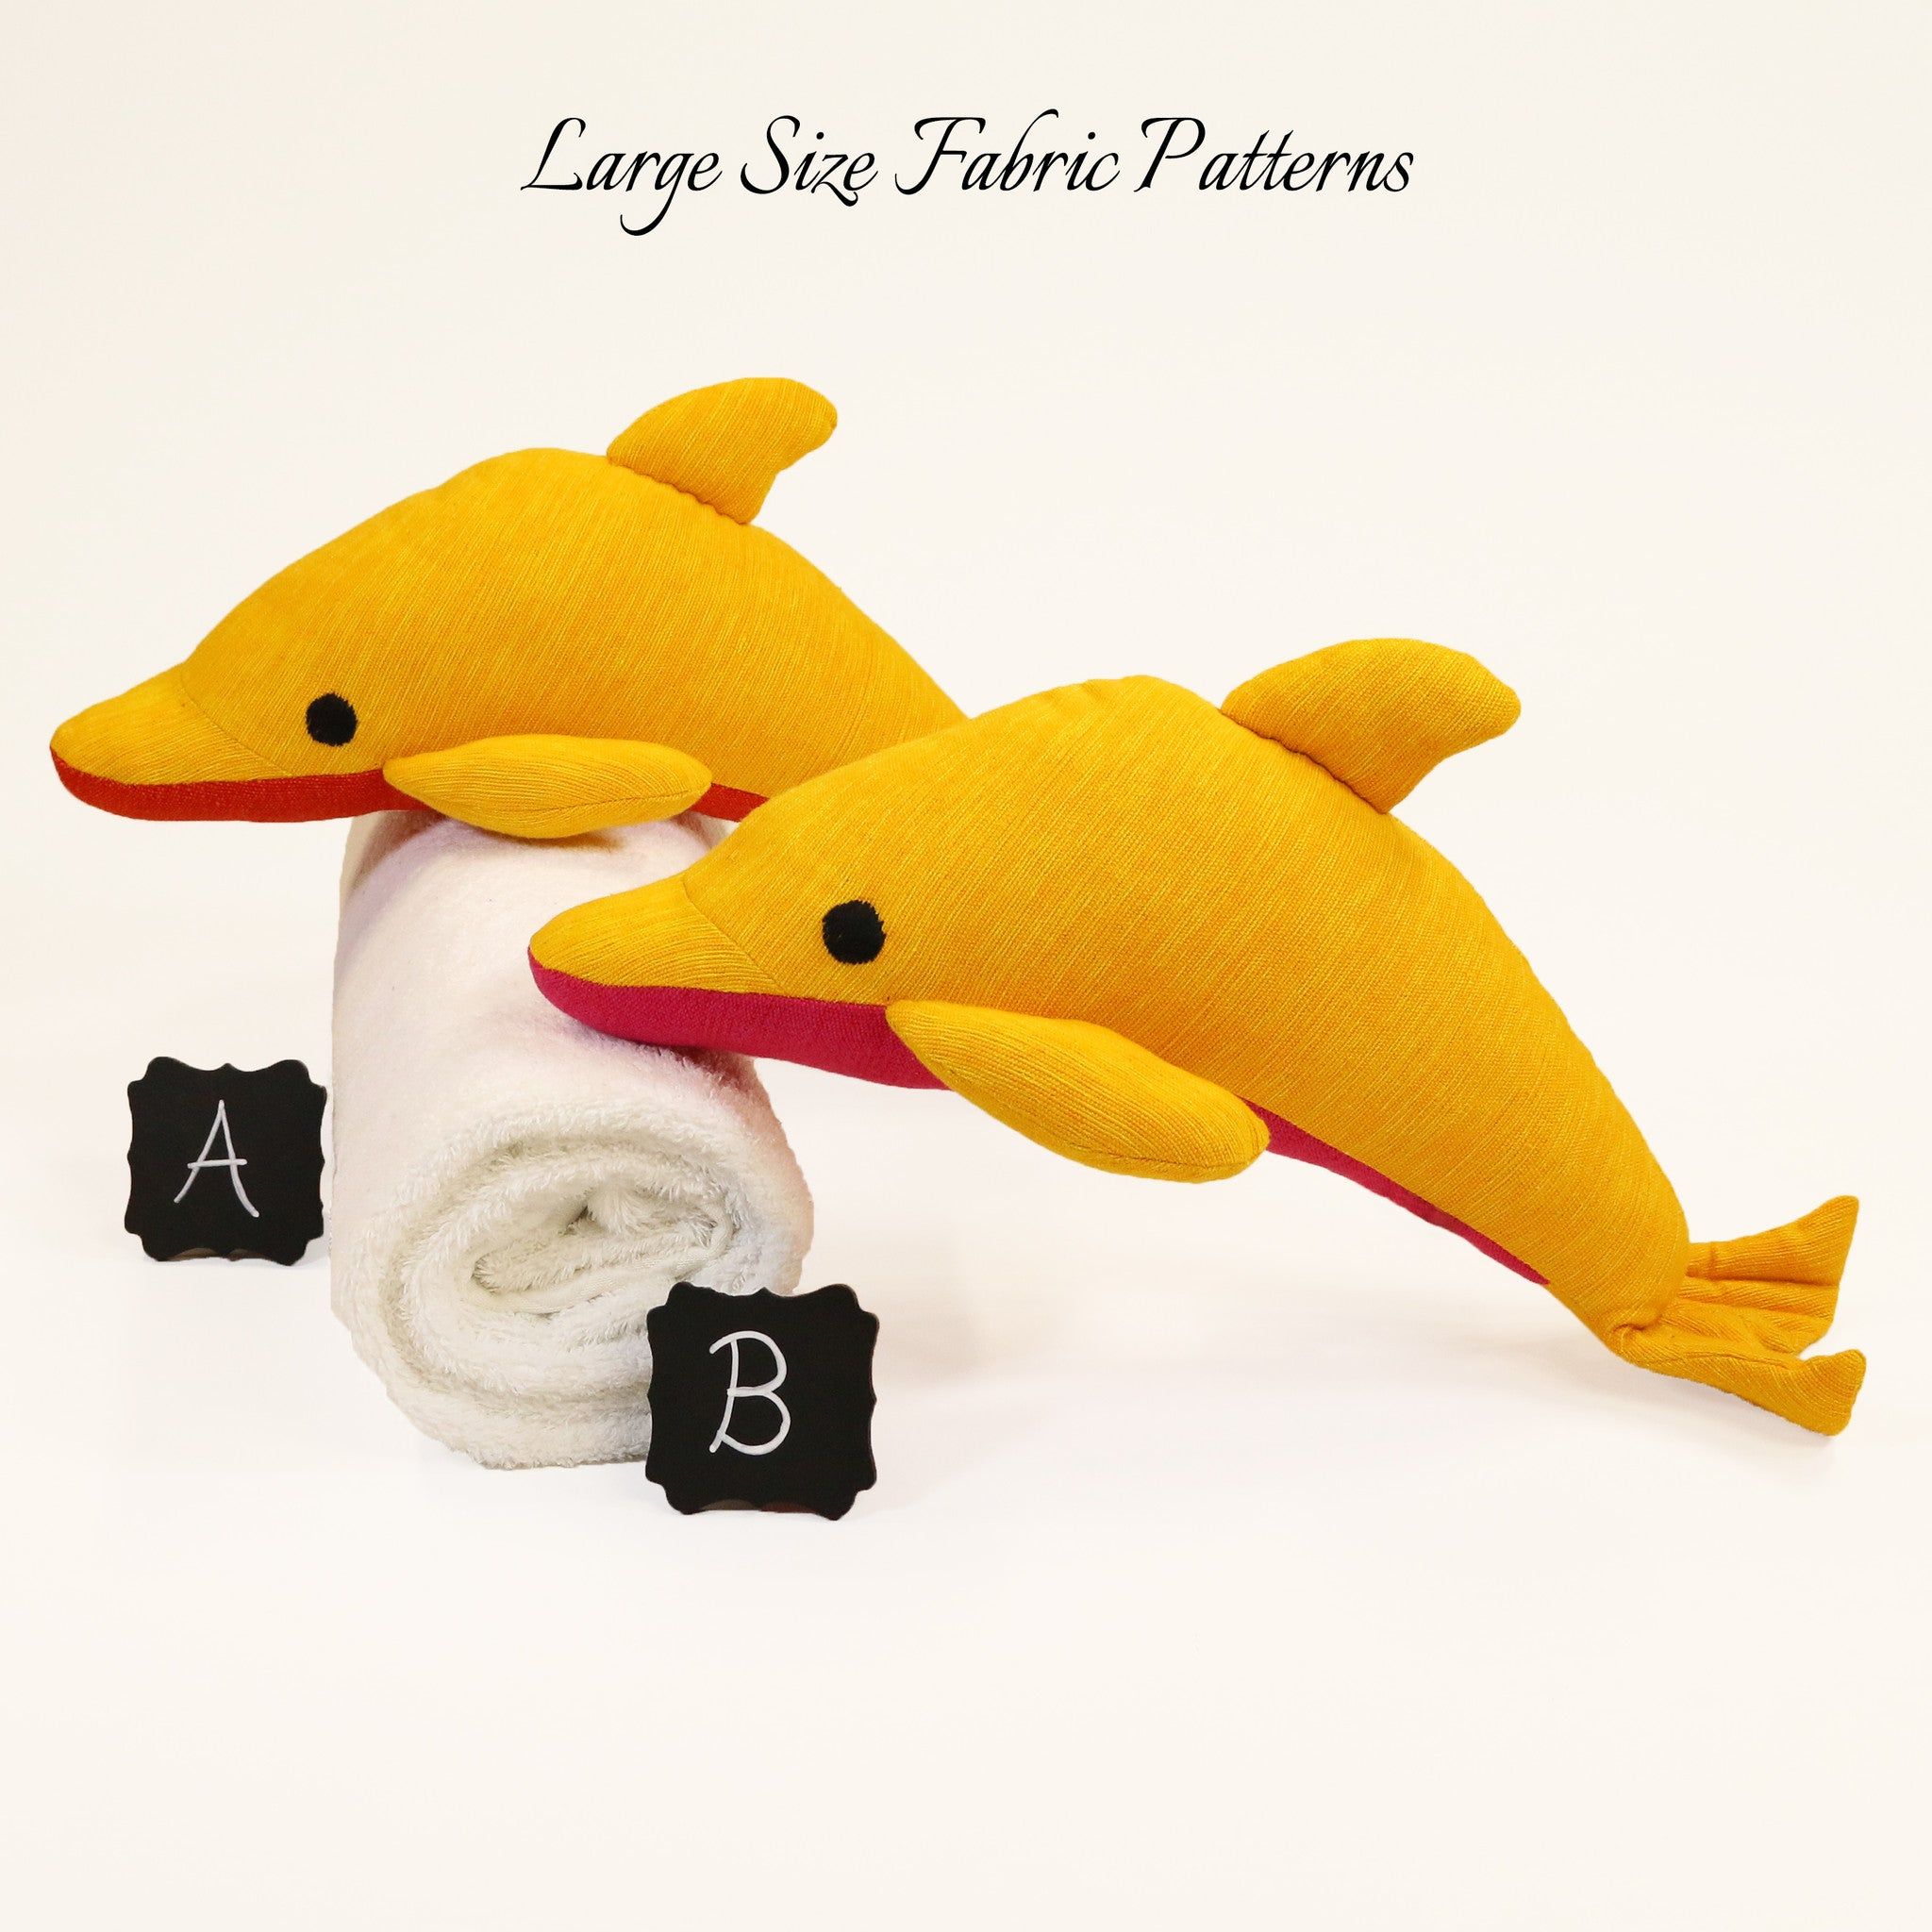 Debby, the Dolphin – all large size fabric patterns shown